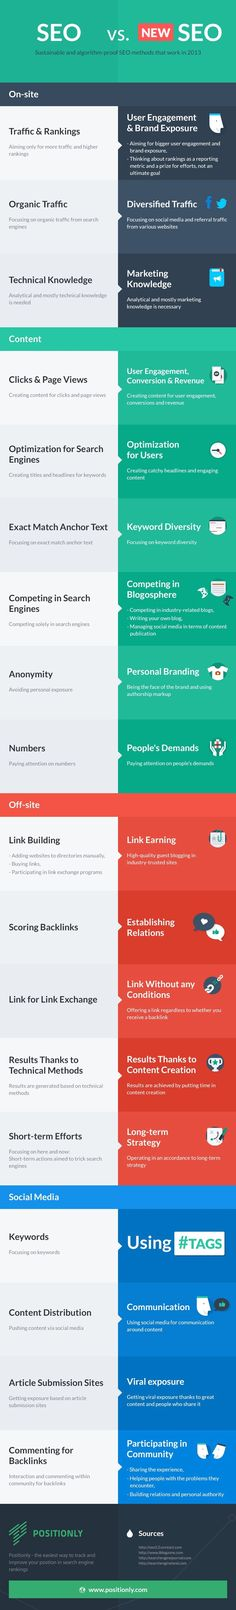 seo-marketing-2013-infographic